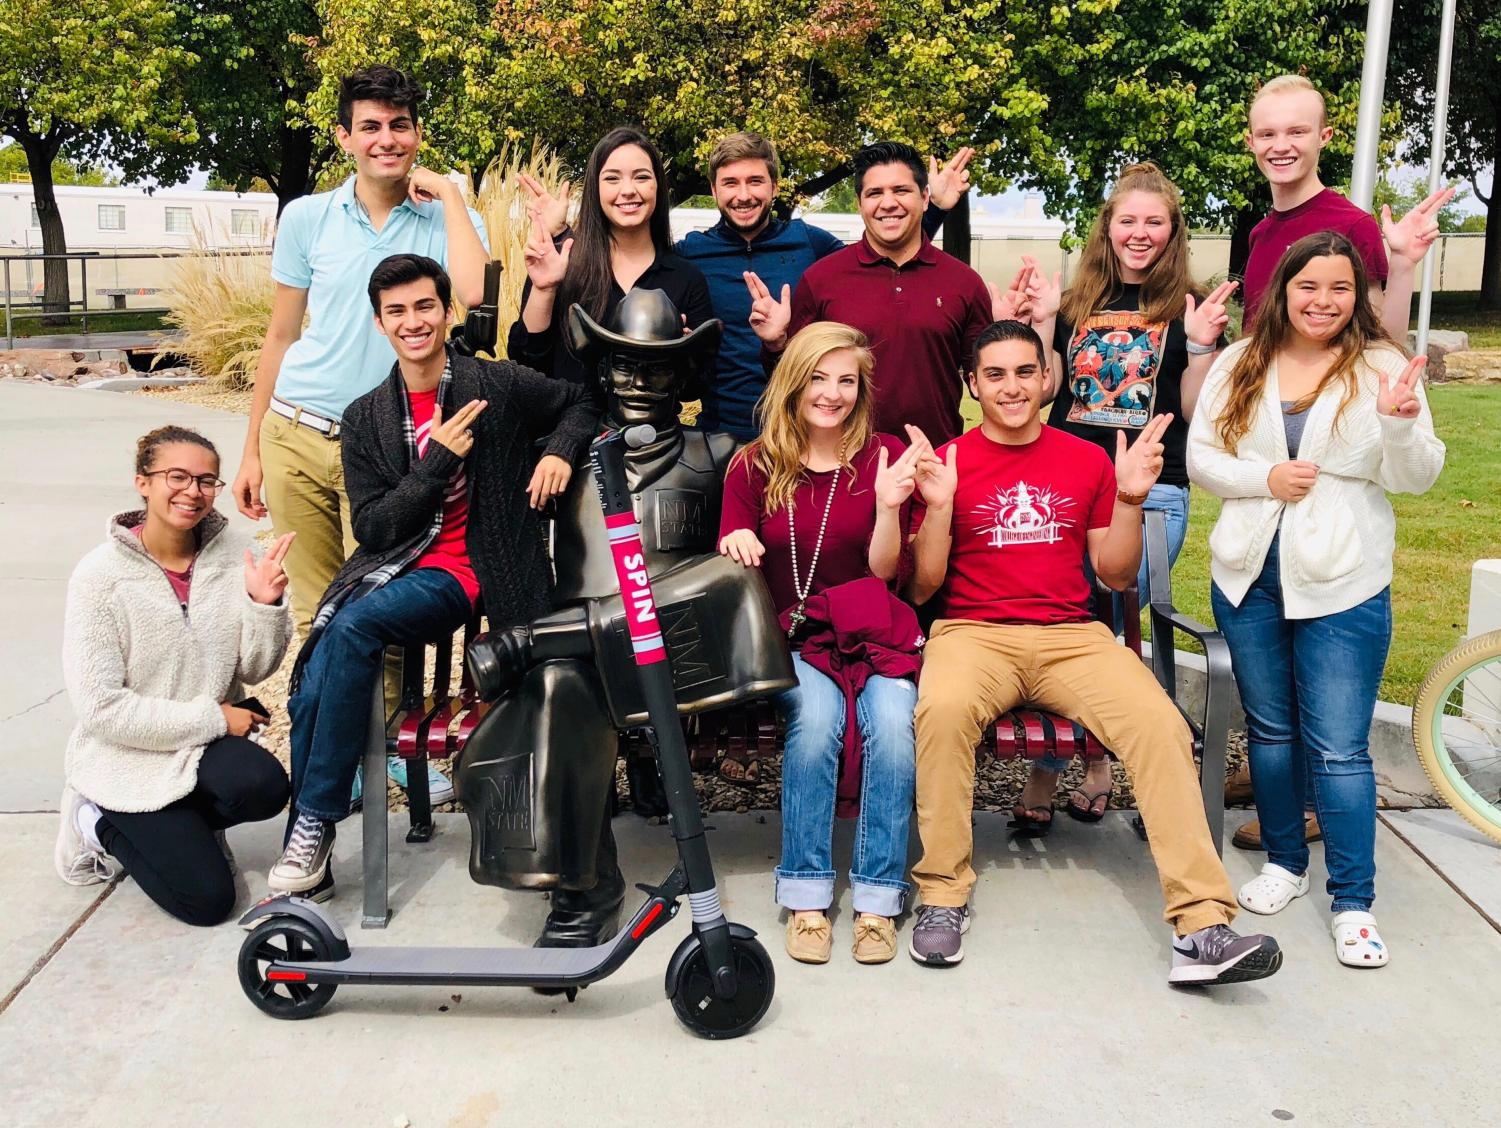 The electric scooters will provide an easy way to students to get around campus.